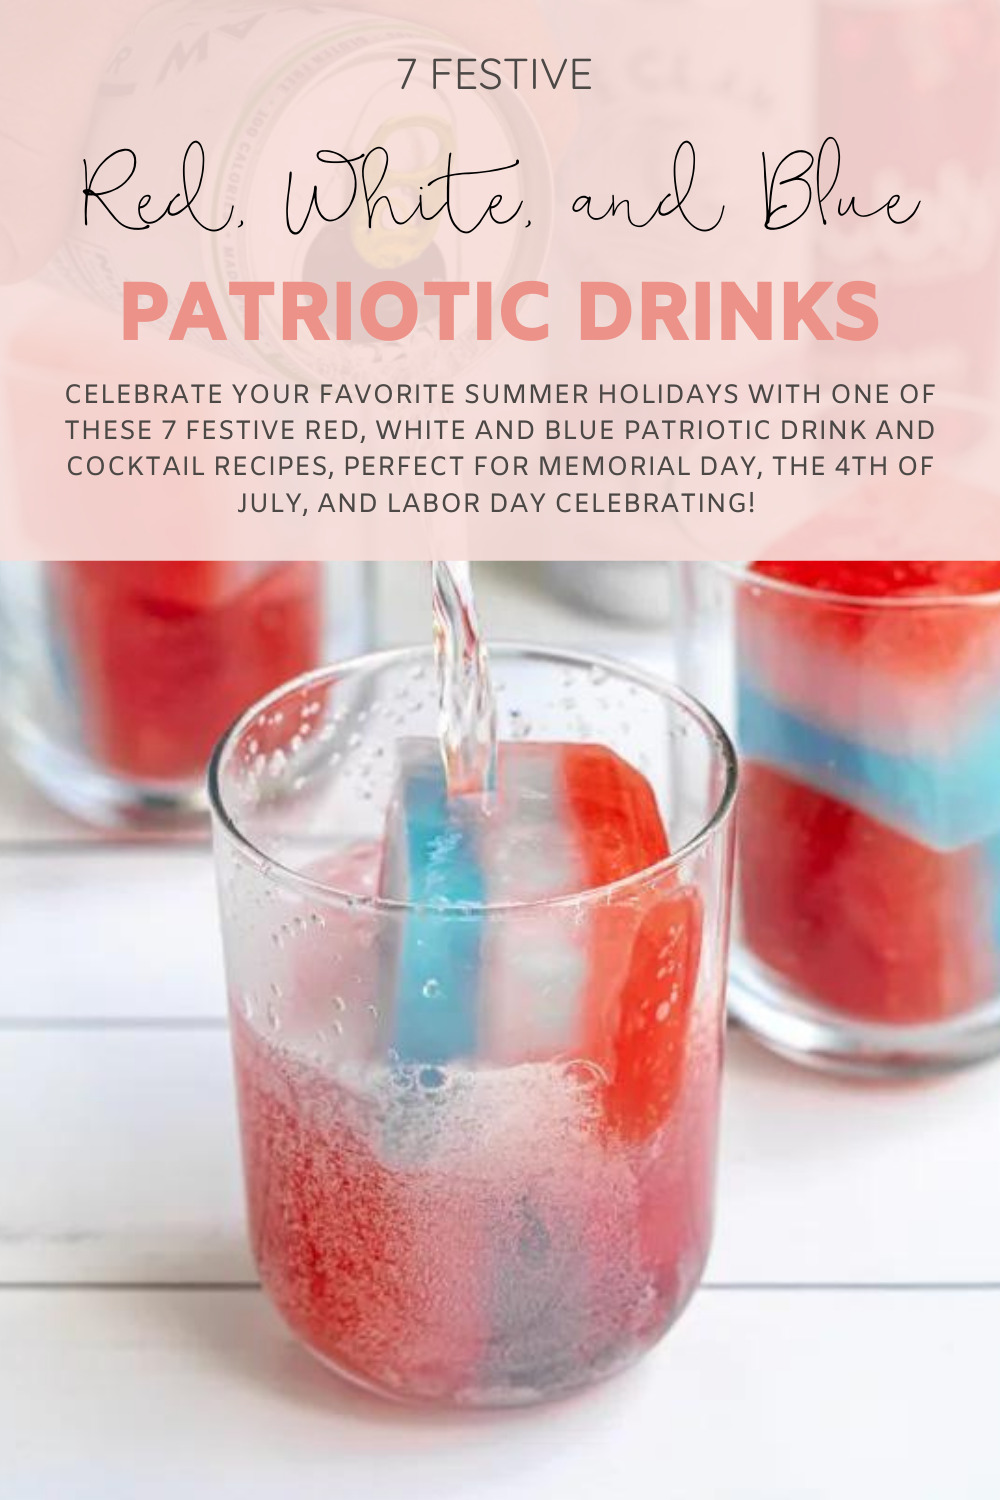 Patriotic Drink and Cocktail Recipes glass with colored ice cubes